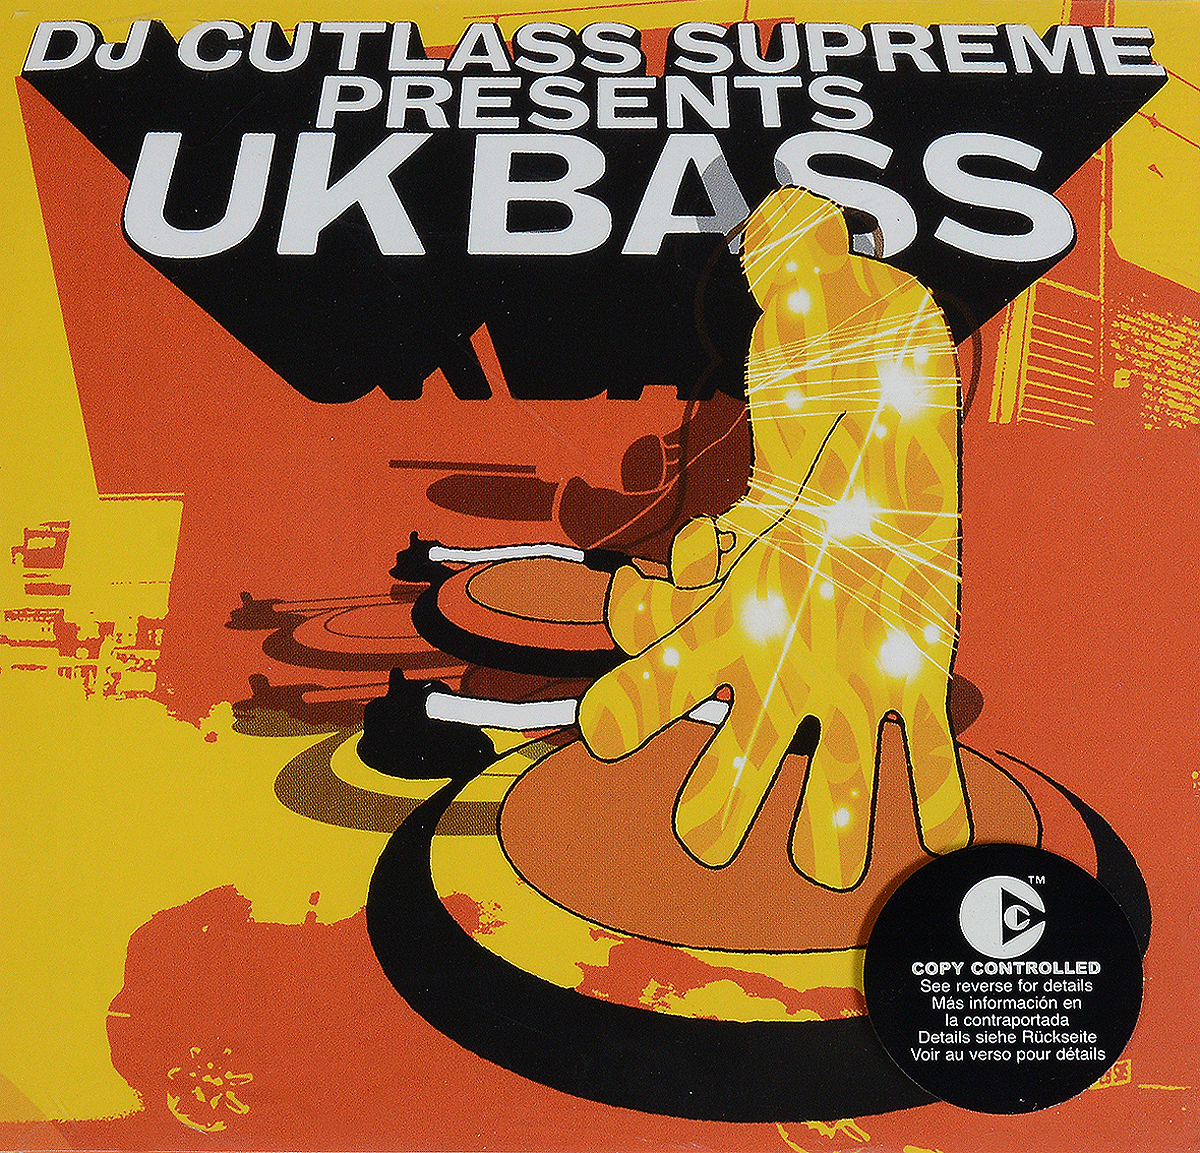 VARIOUS ARTISTS. DJ CUTLASS SUPREME PRESENTS UK BASS various artists dj cutlass supreme presents uk bass